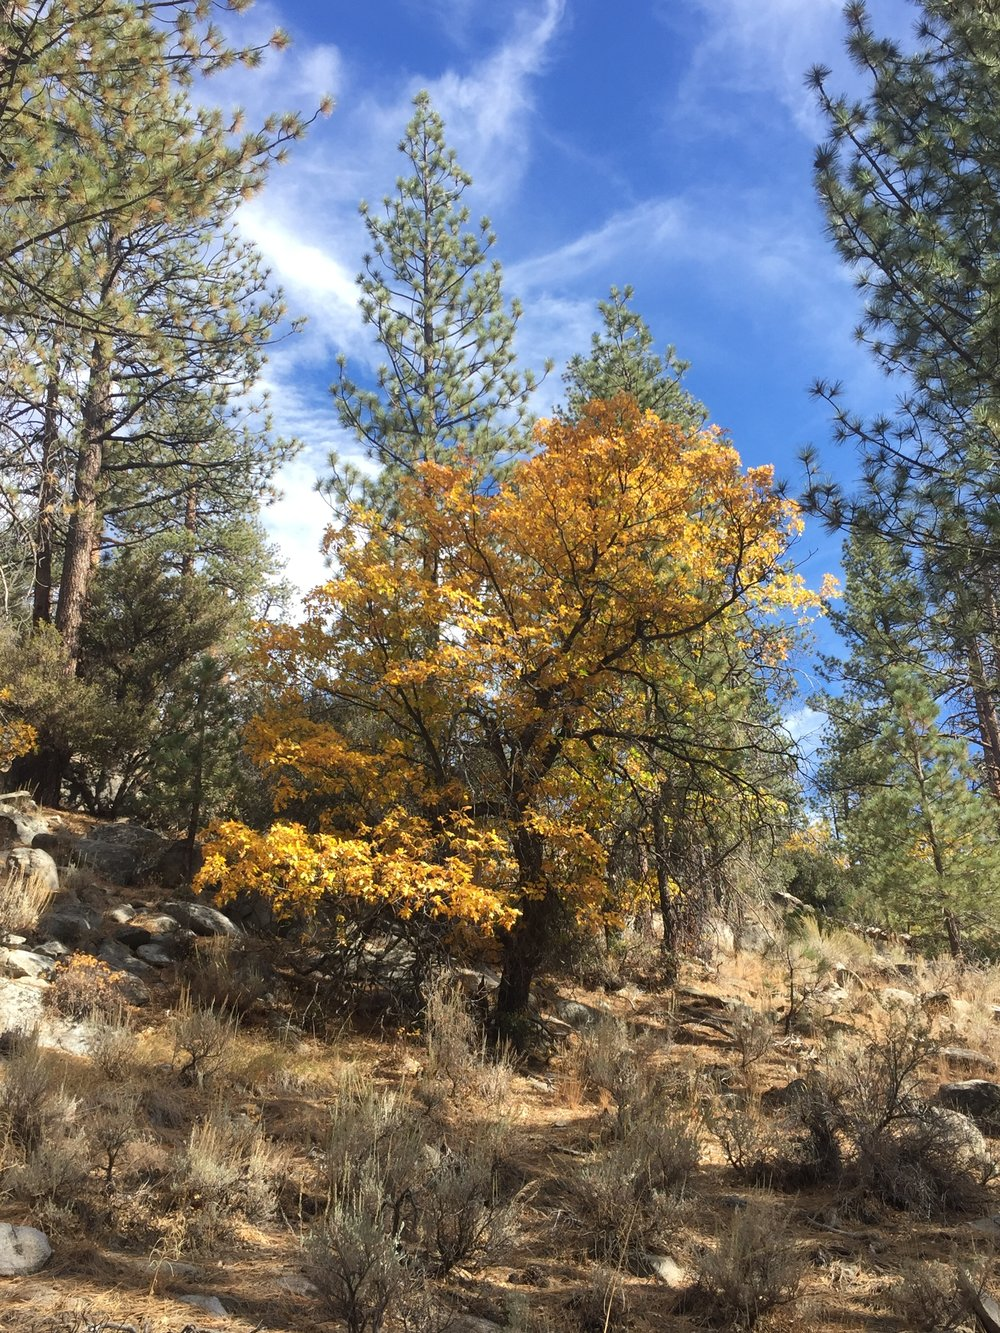 Mixed forest makes for fall colors along Cottonwood Creek (dry) south of Landers Meadow